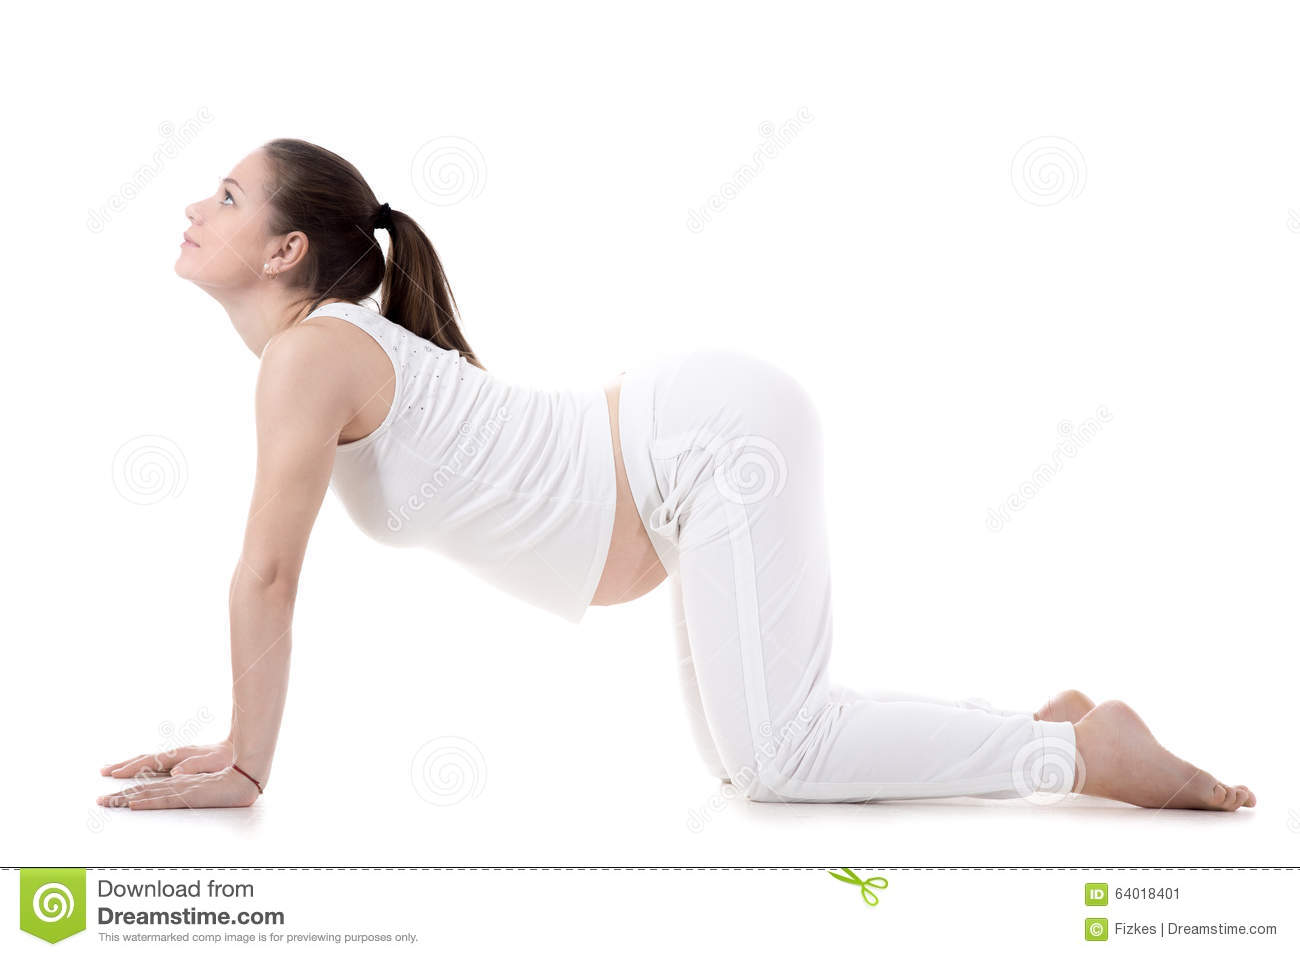 Prenatal Yoga Cow Pose Stock Image Image Of Belly Asana 64018401